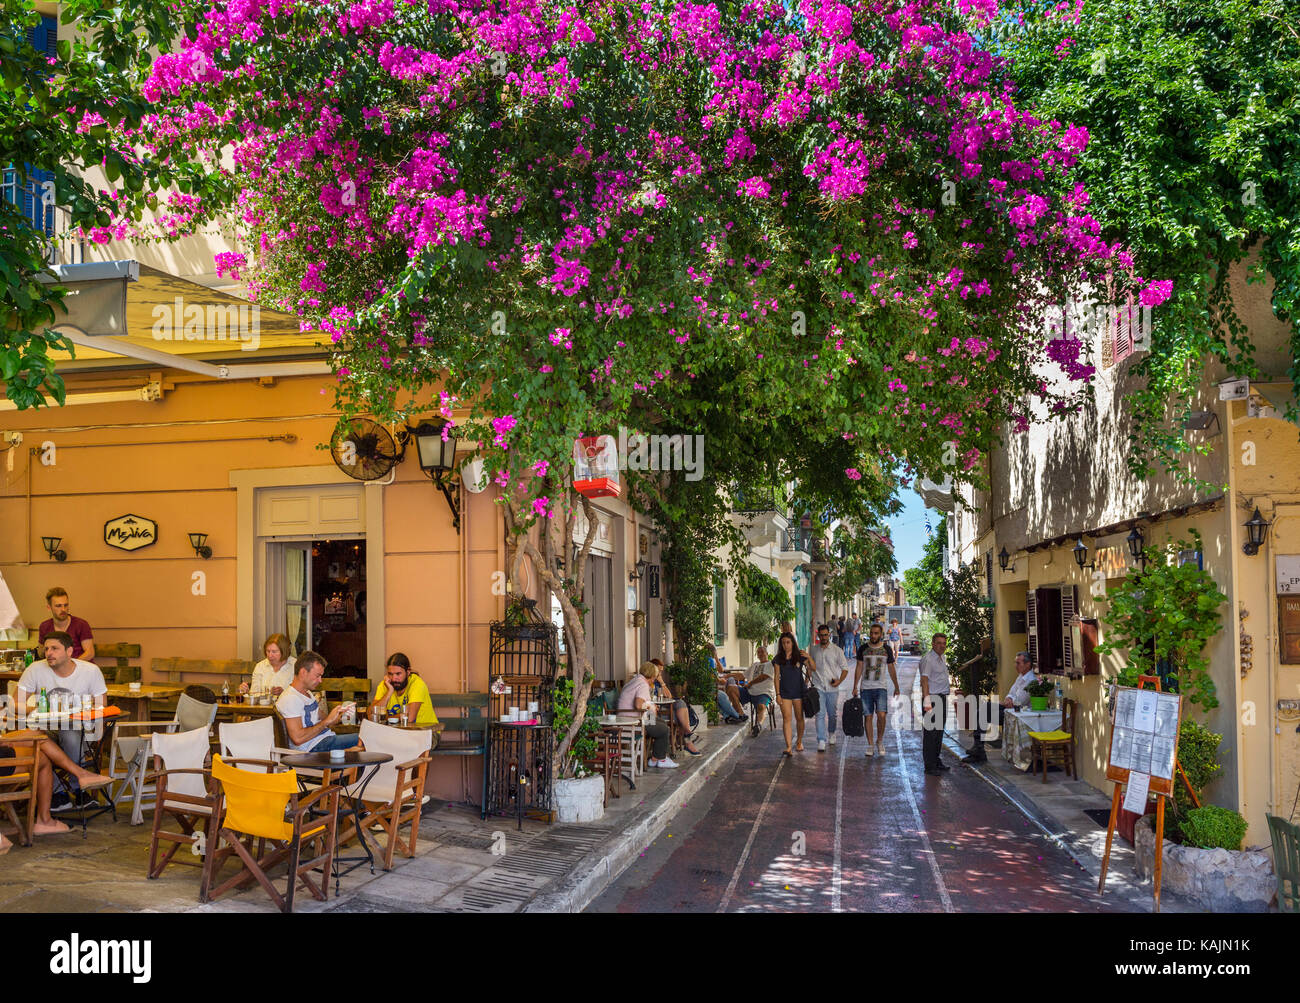 Cafe and taverna on Lisiou Street in the Plaka district, Athens, Greece - Stock Image